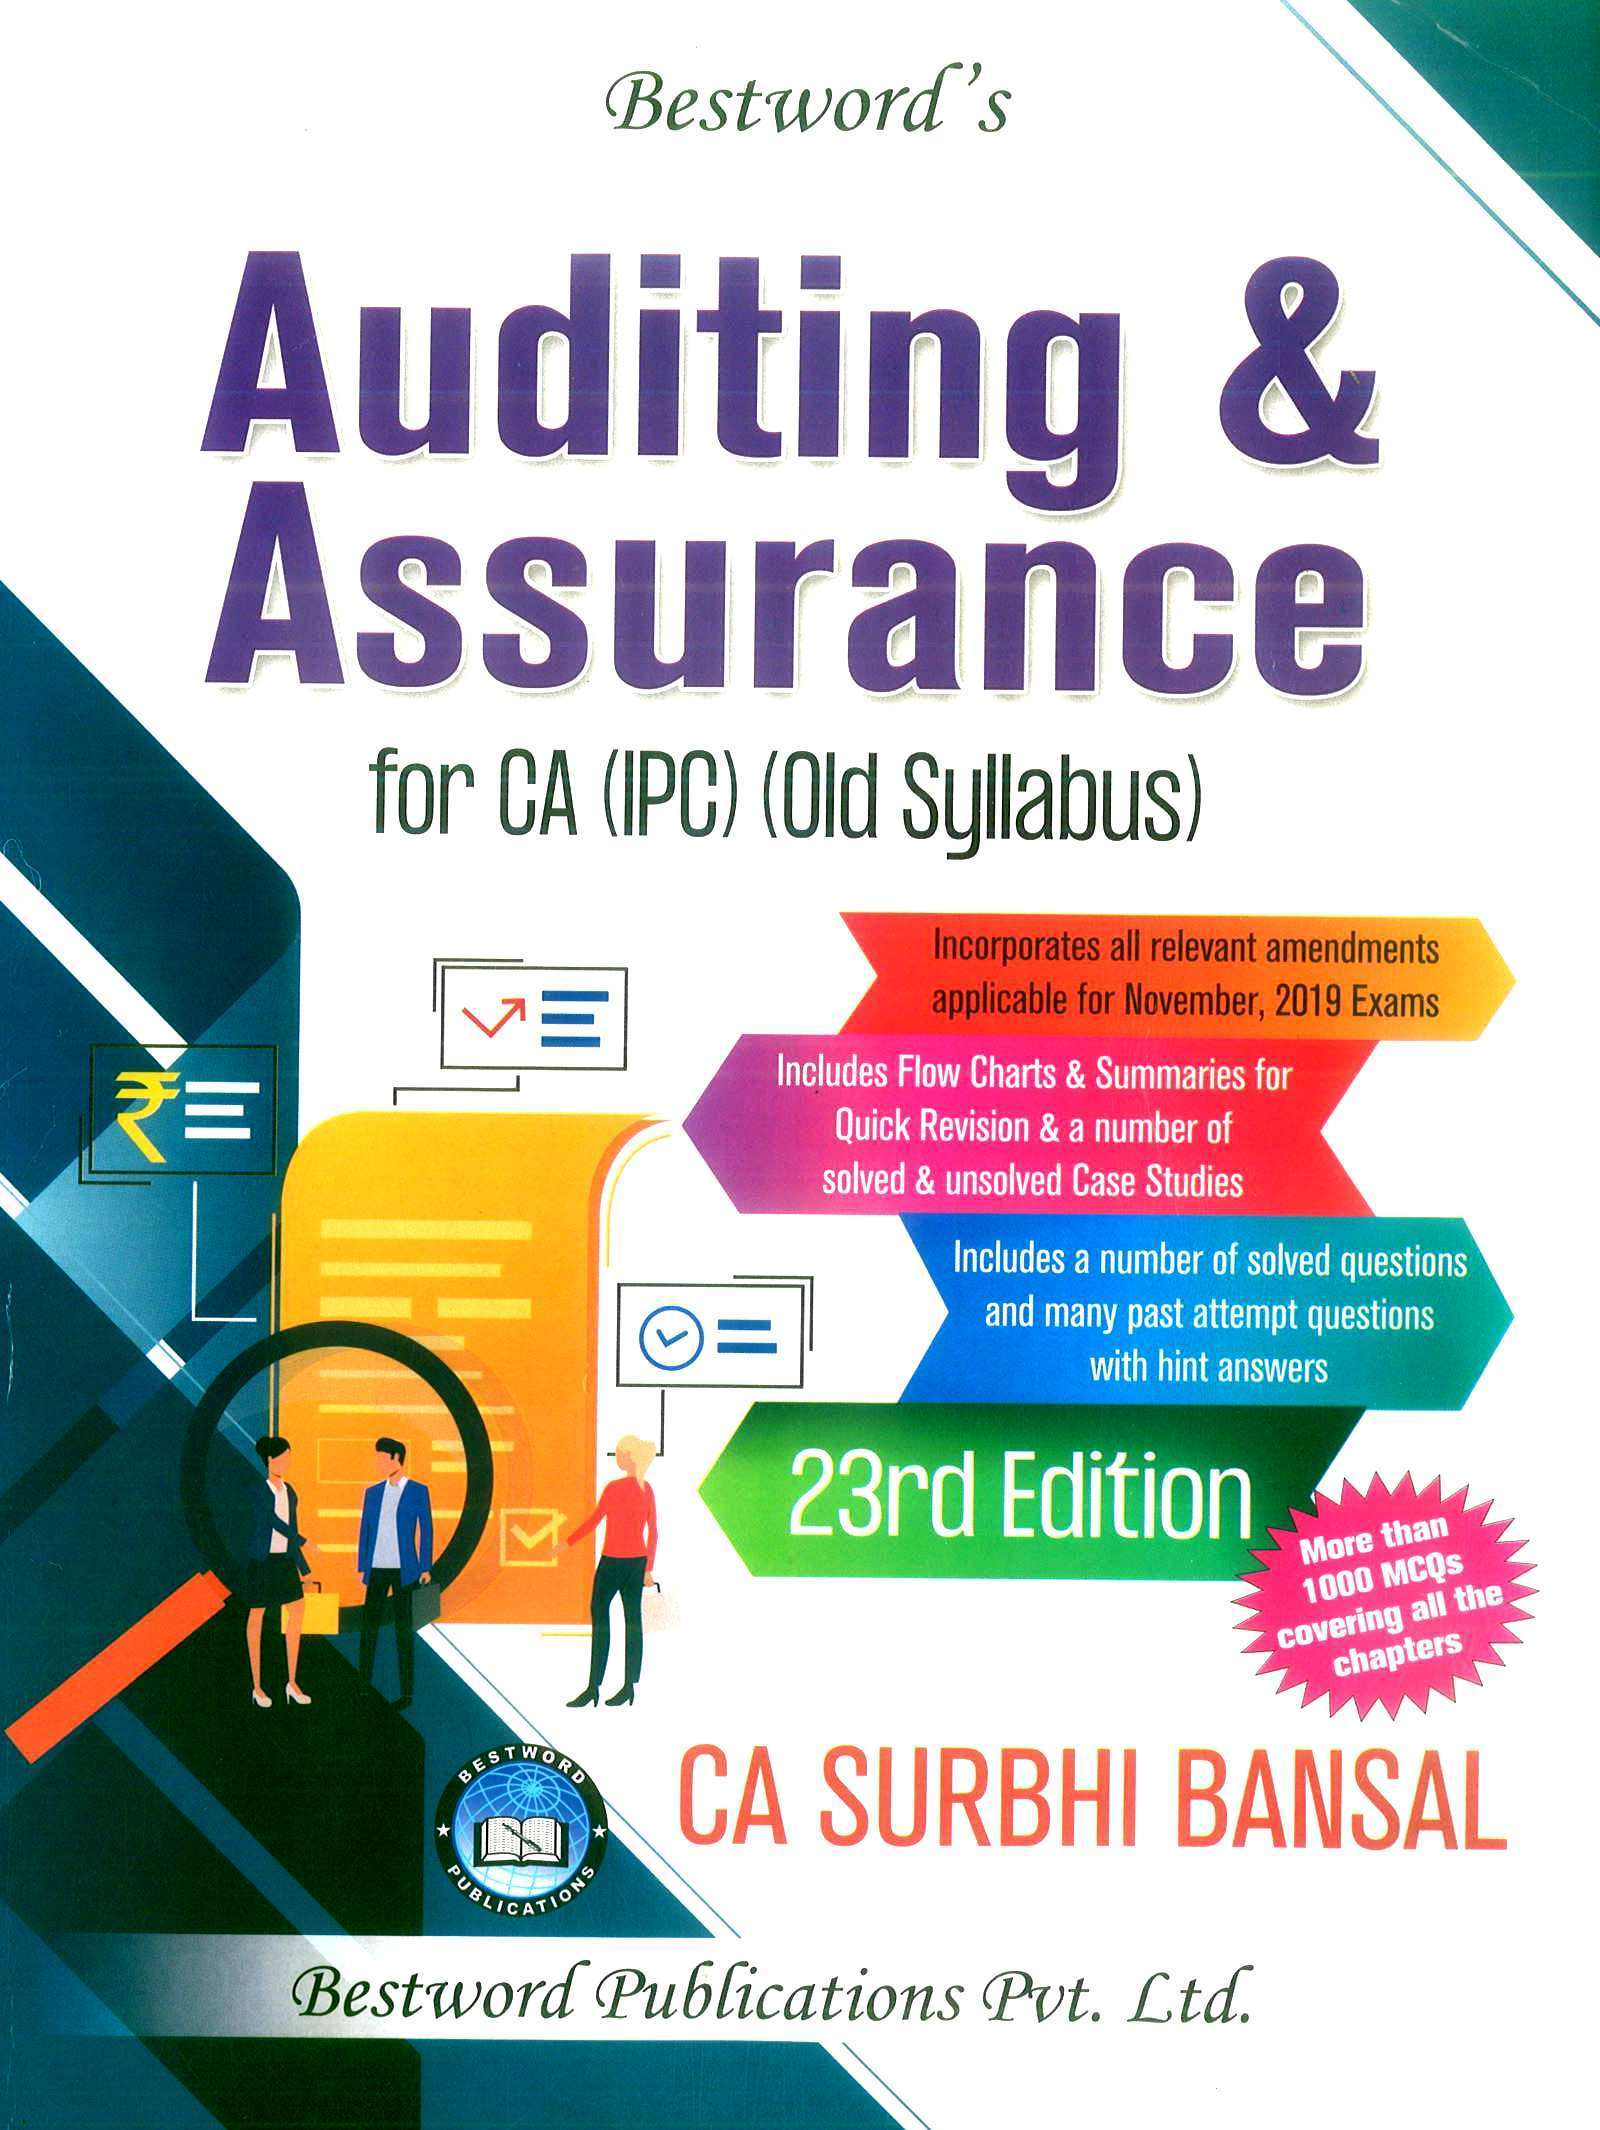 Bestword Auditing and Assurance for CA IPCC by CA Surbhi bansal 23rd Edition for November  2019 Exam (old syllabus)